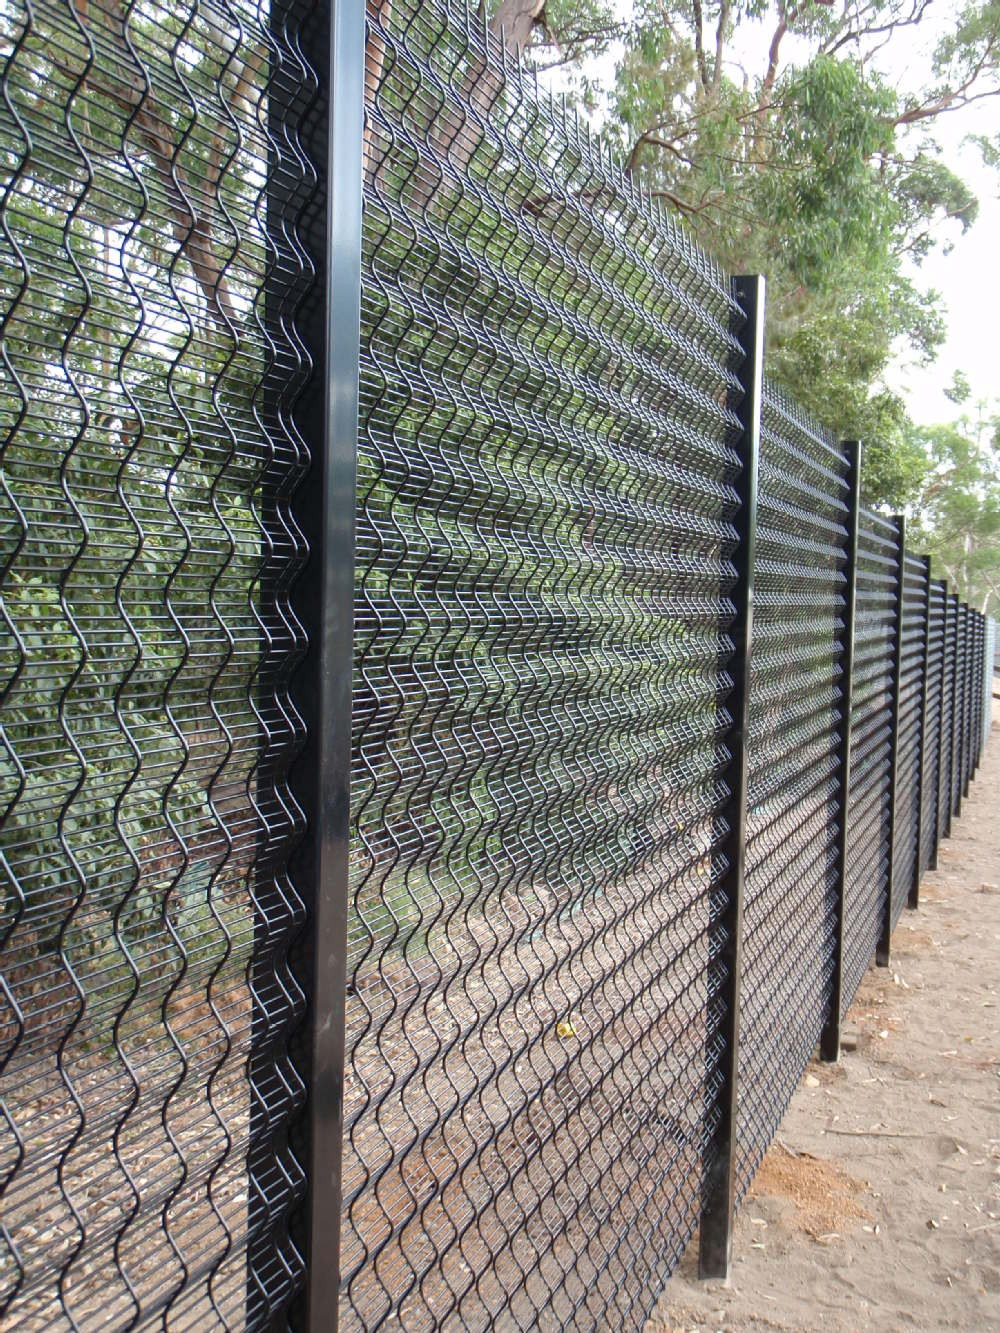 358 Welded Mesh Fence Galvanized Mesh Fence Panels 358